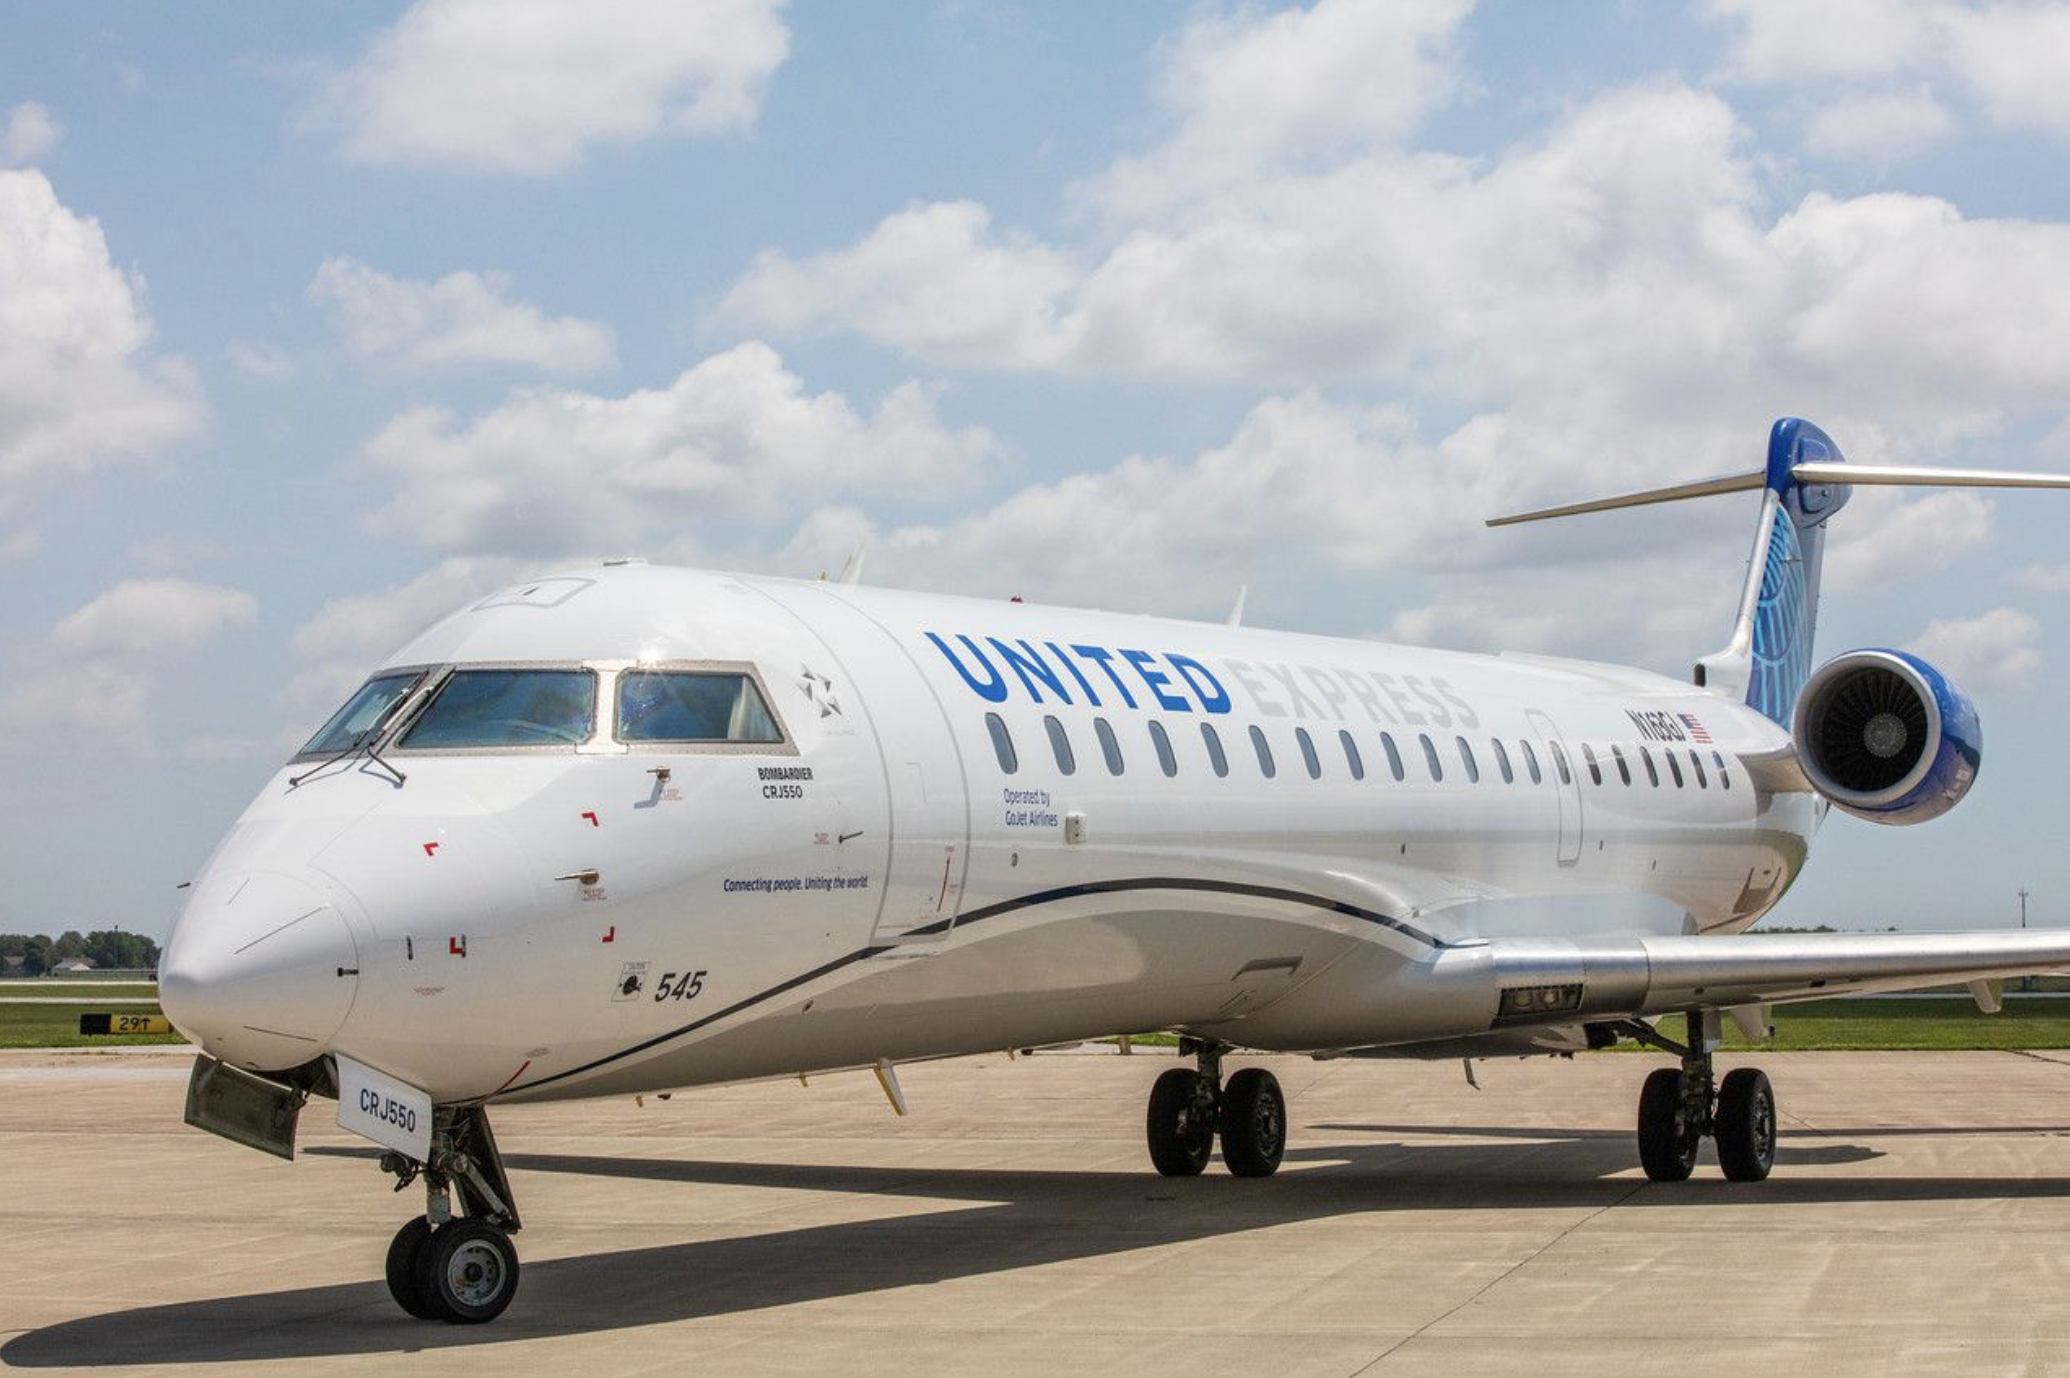 United Airlines to Start New Service Between Orange County and Honolulu